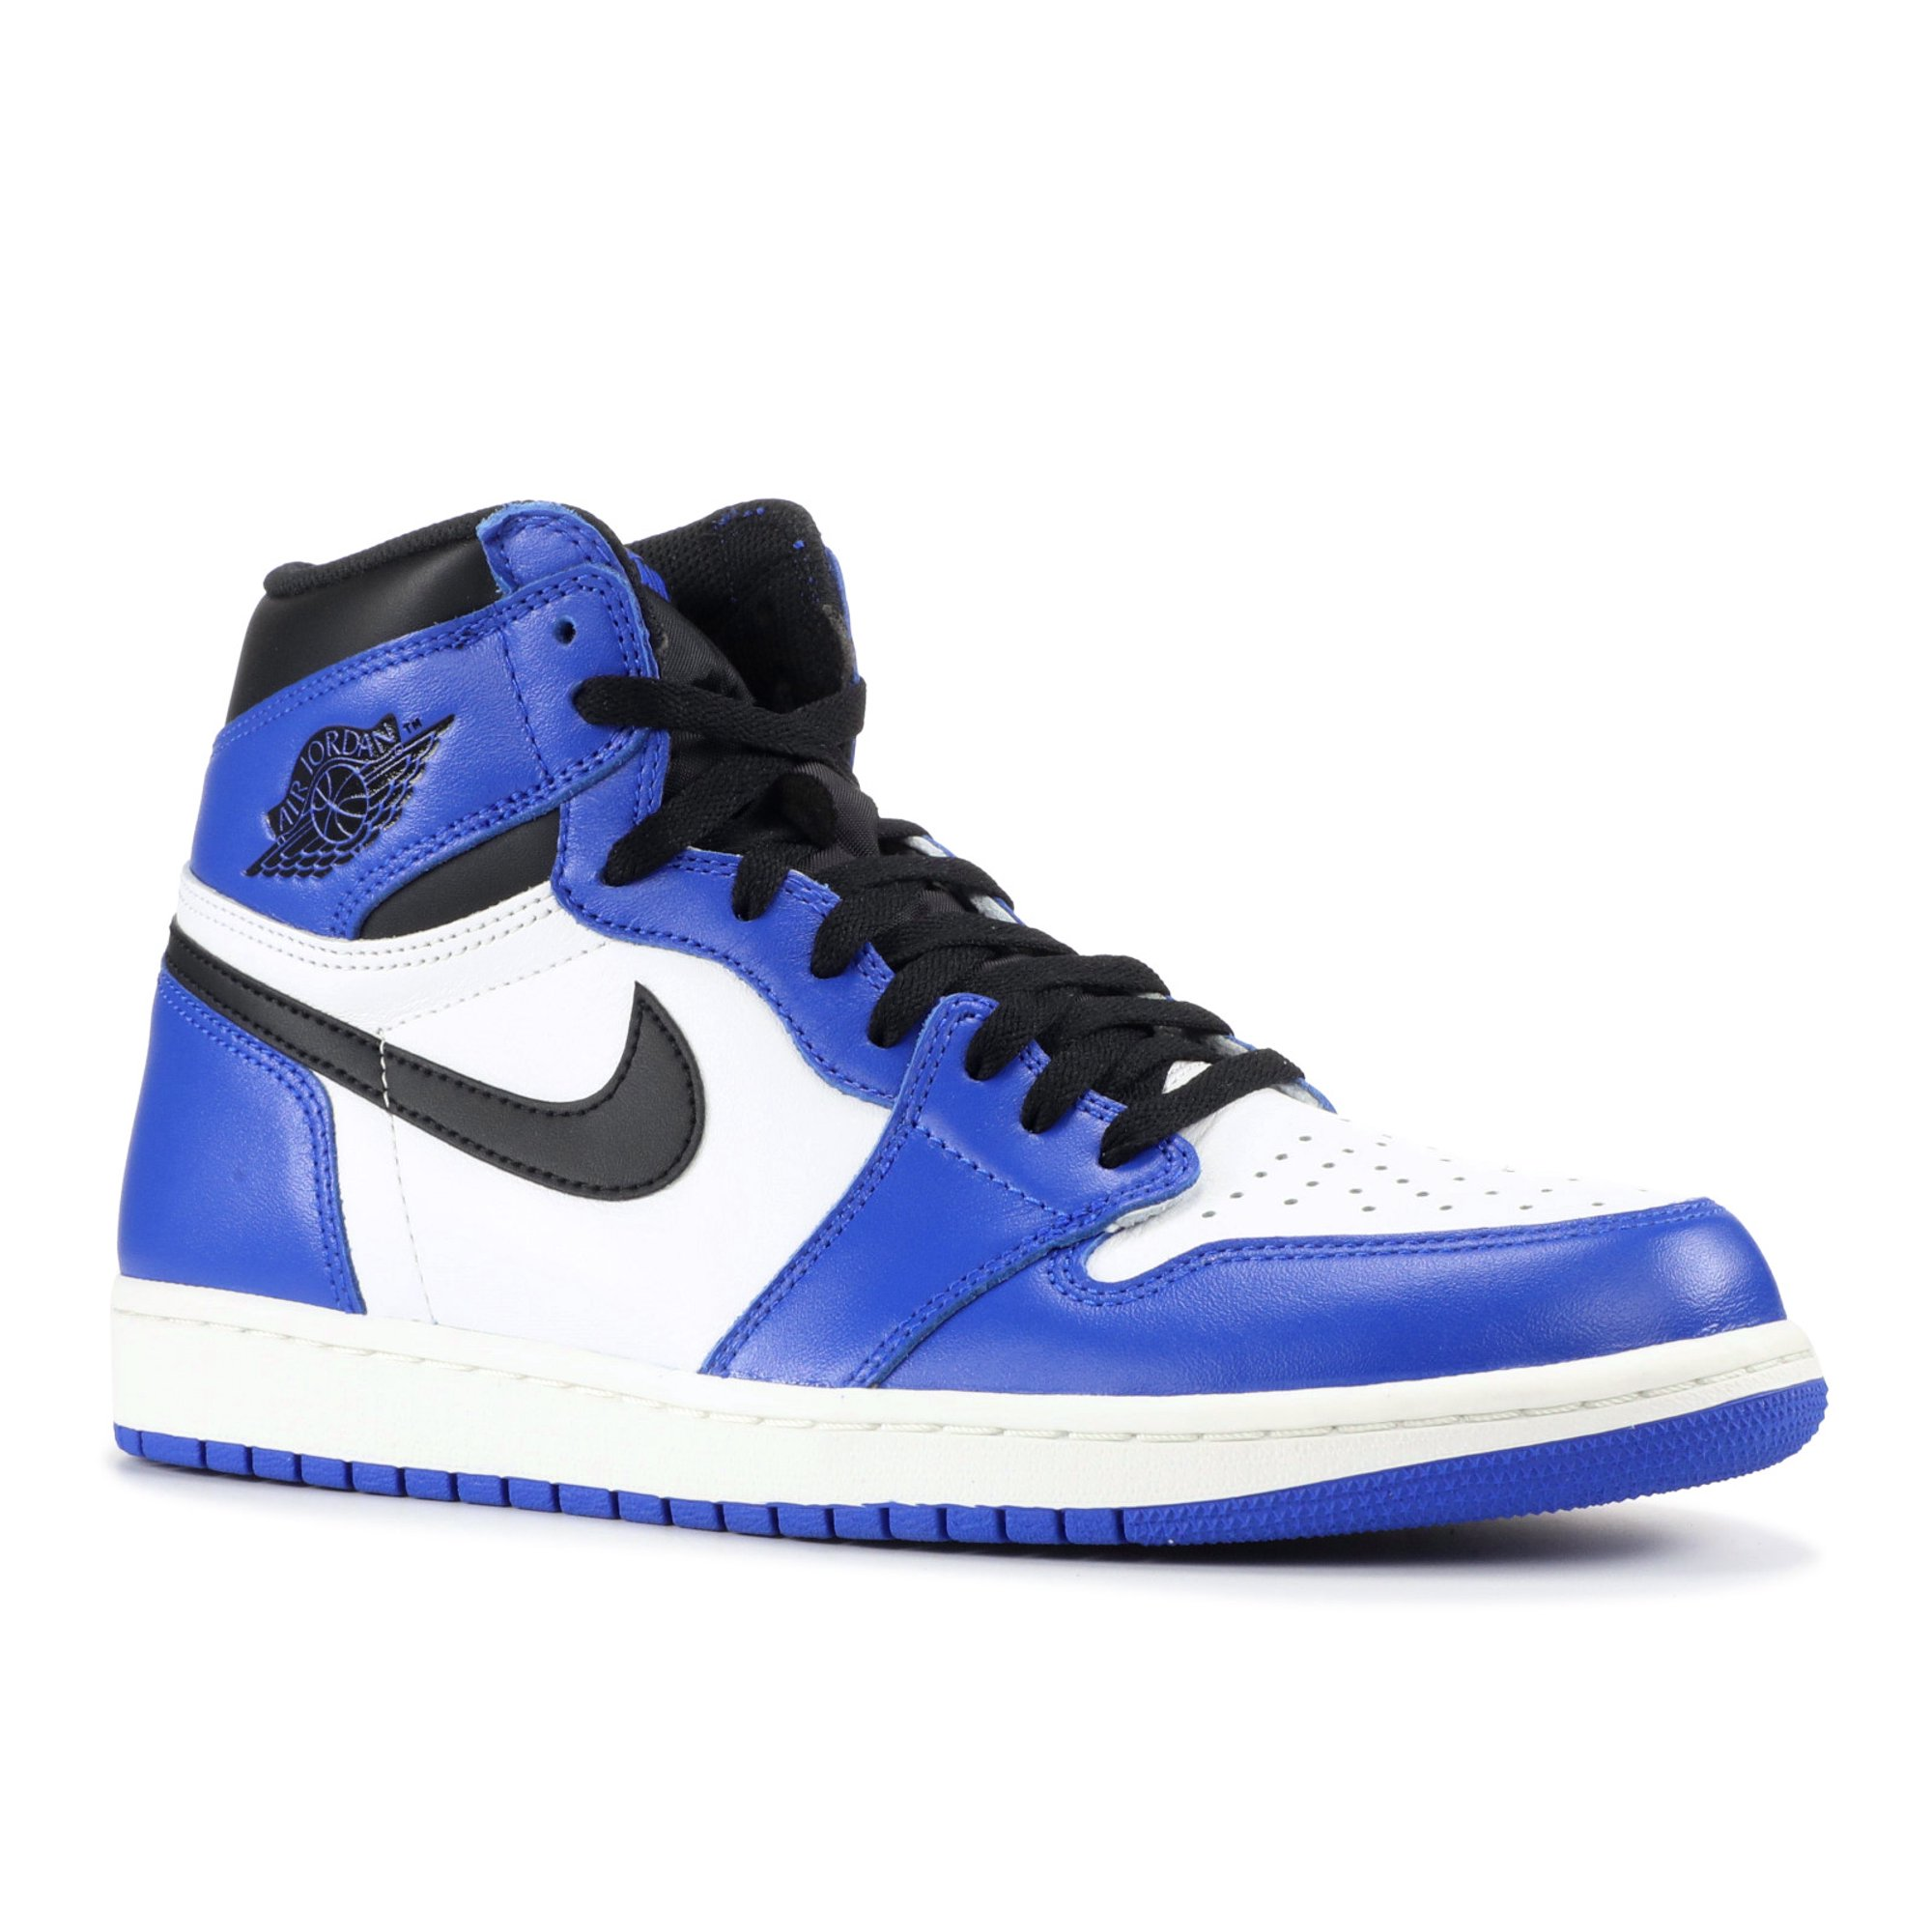 a37493495a2efc Air Jordan - Men - Air Jordan 1 Retro